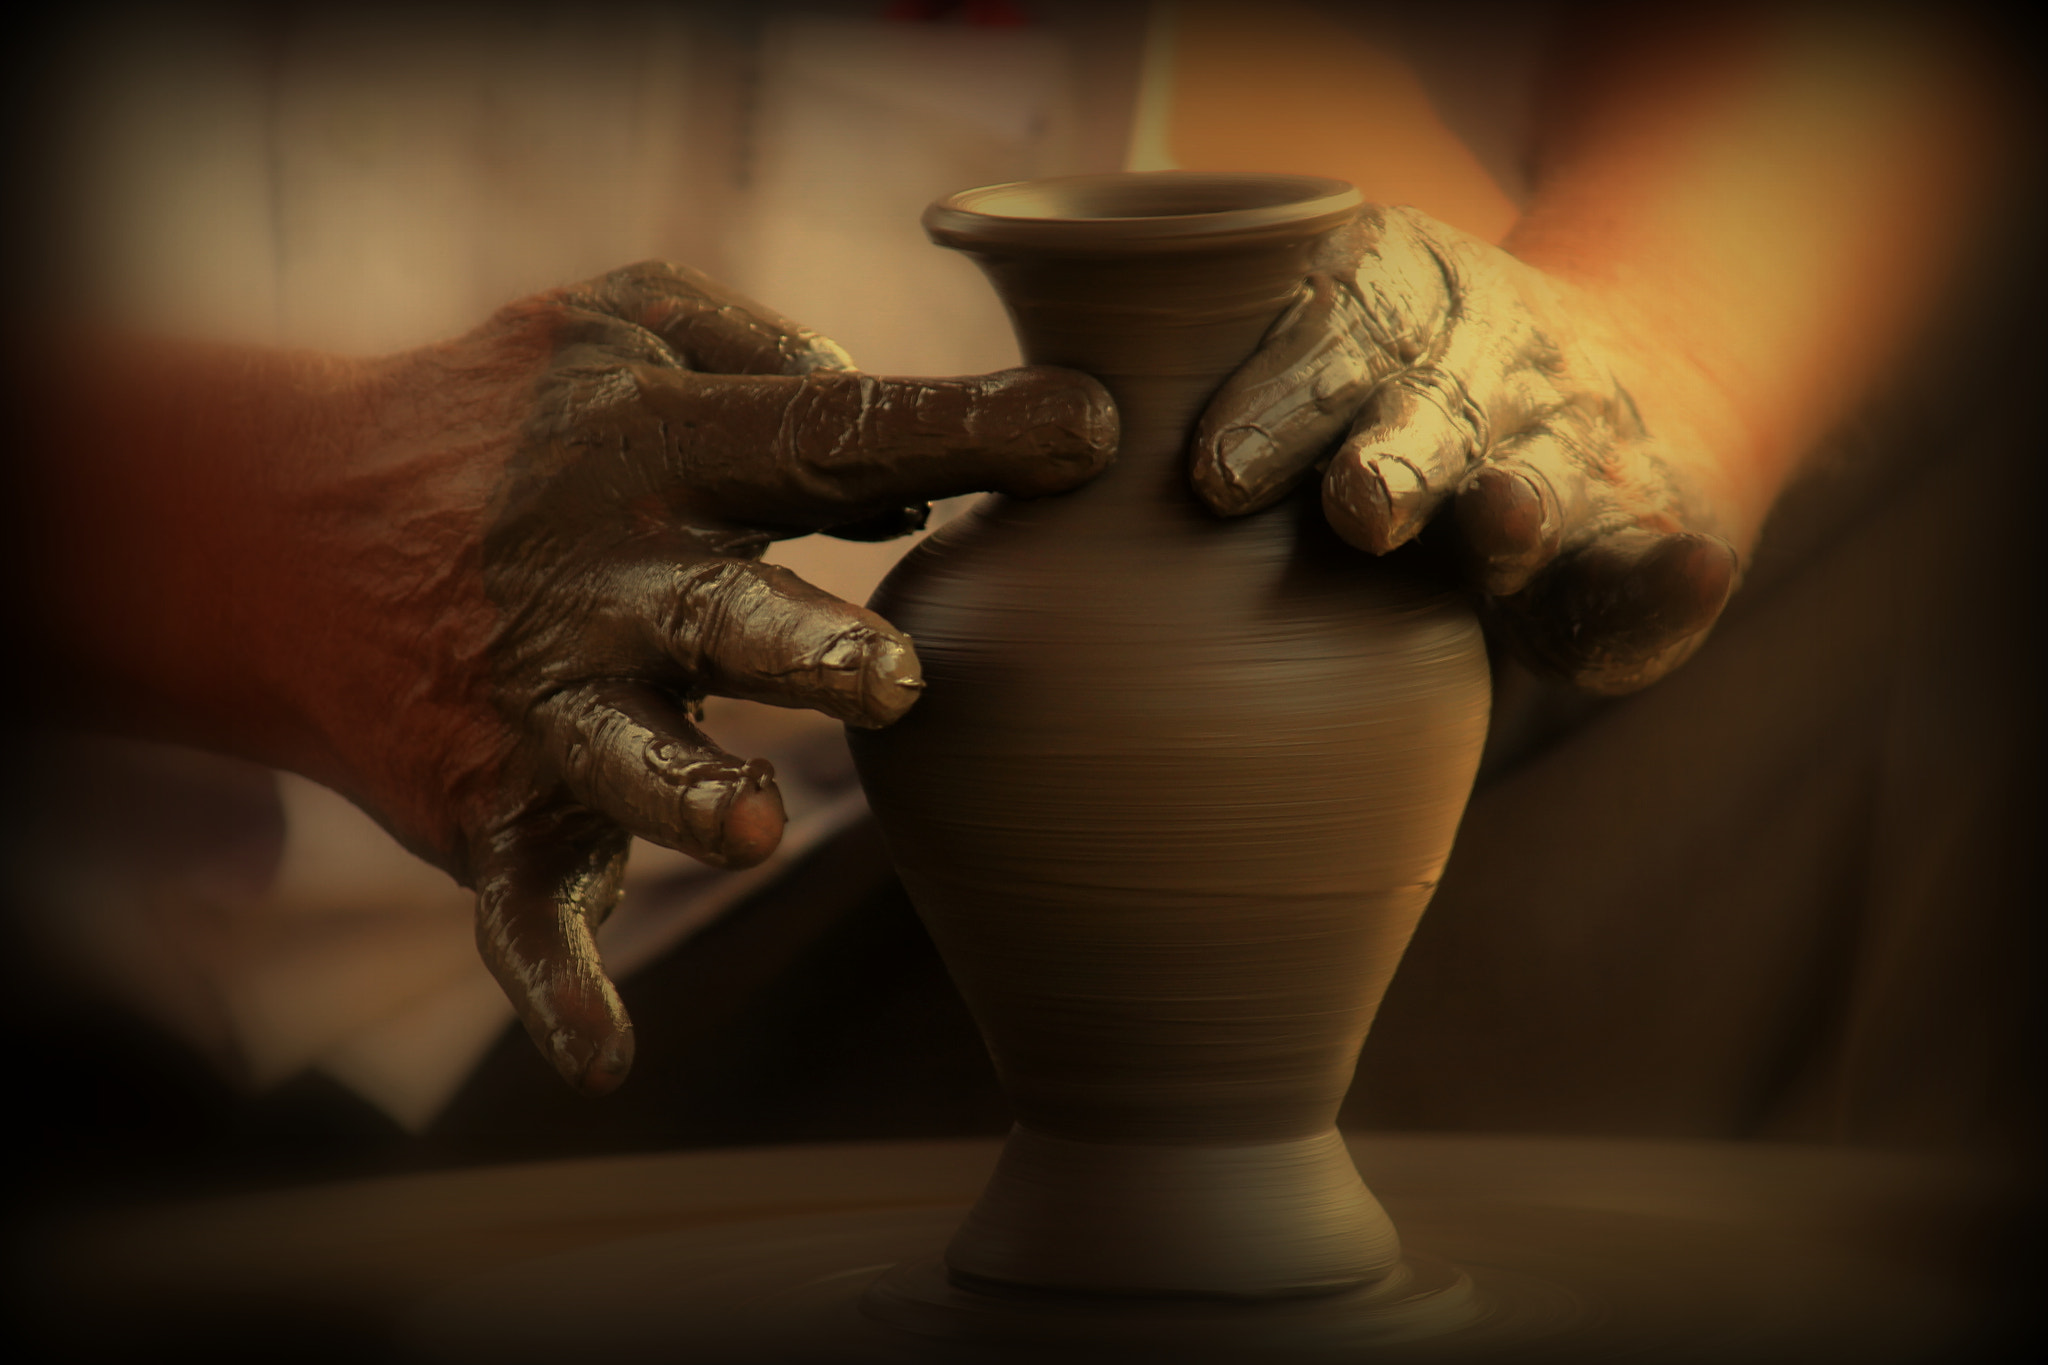 Photograph Pot Making by Deval Jayswal on 500px